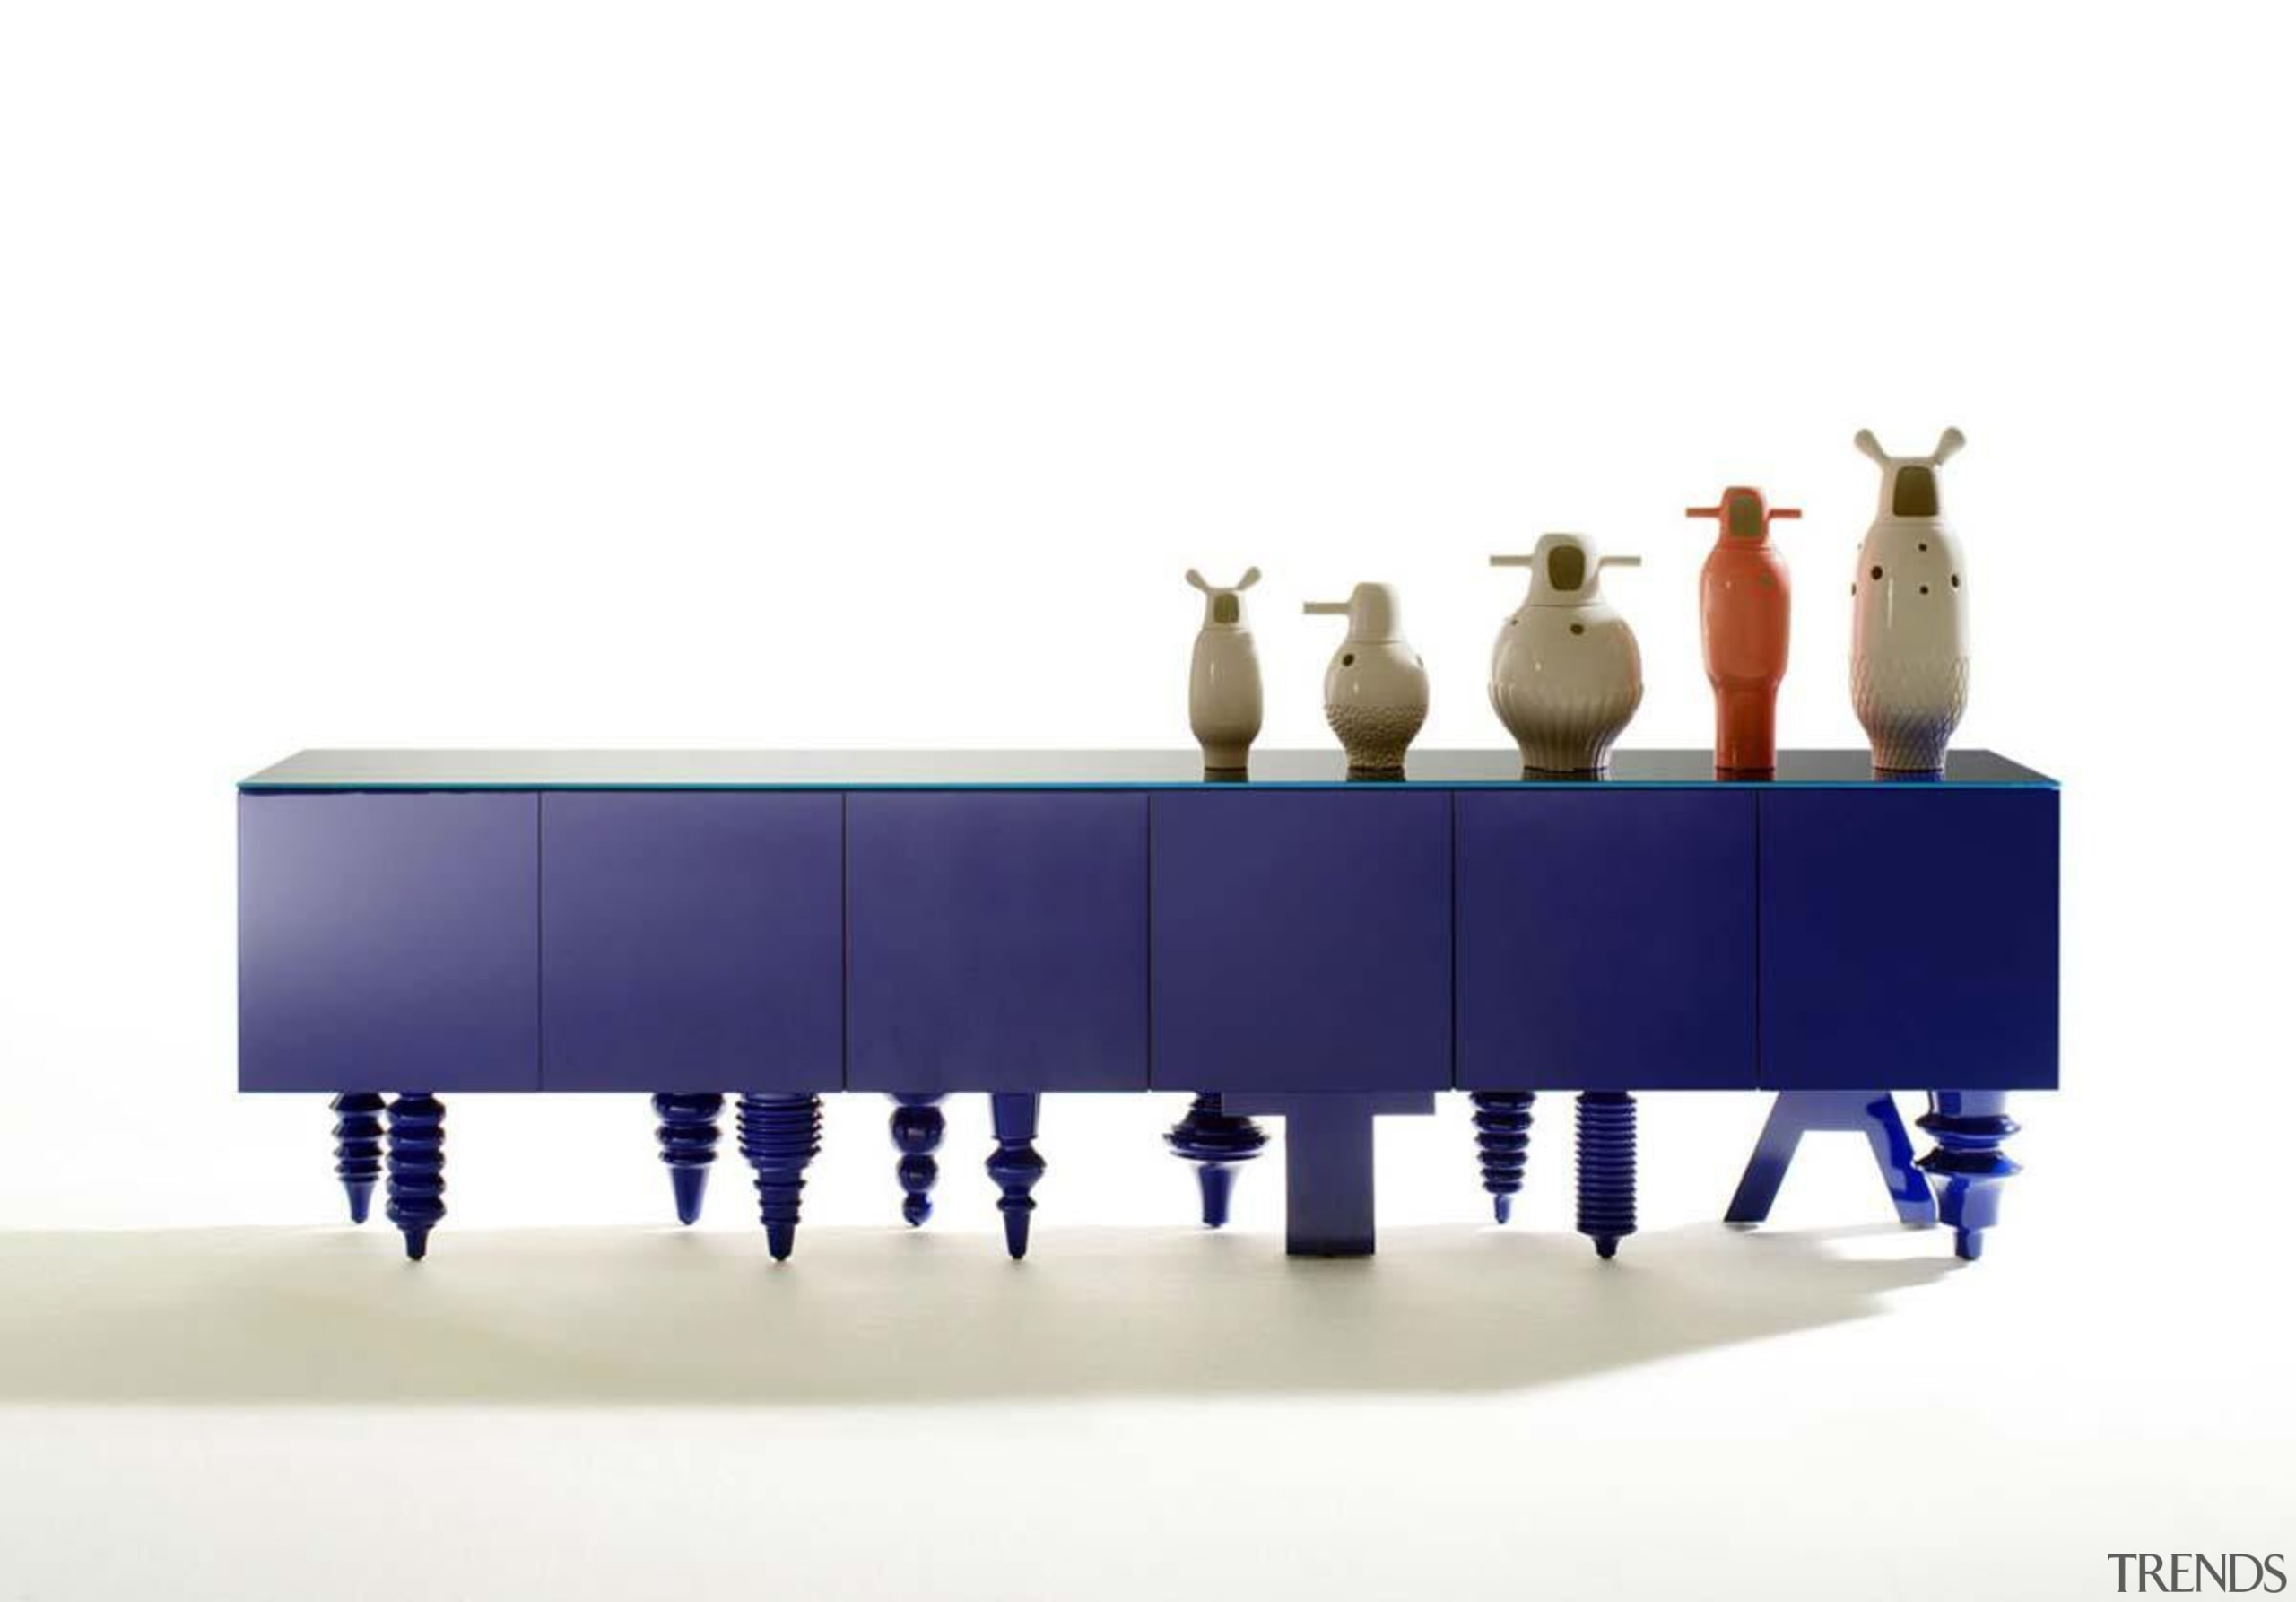 Multileg Cabinet by Hayon for BD-Barcelona - Multileg furniture, product, product design, table, white